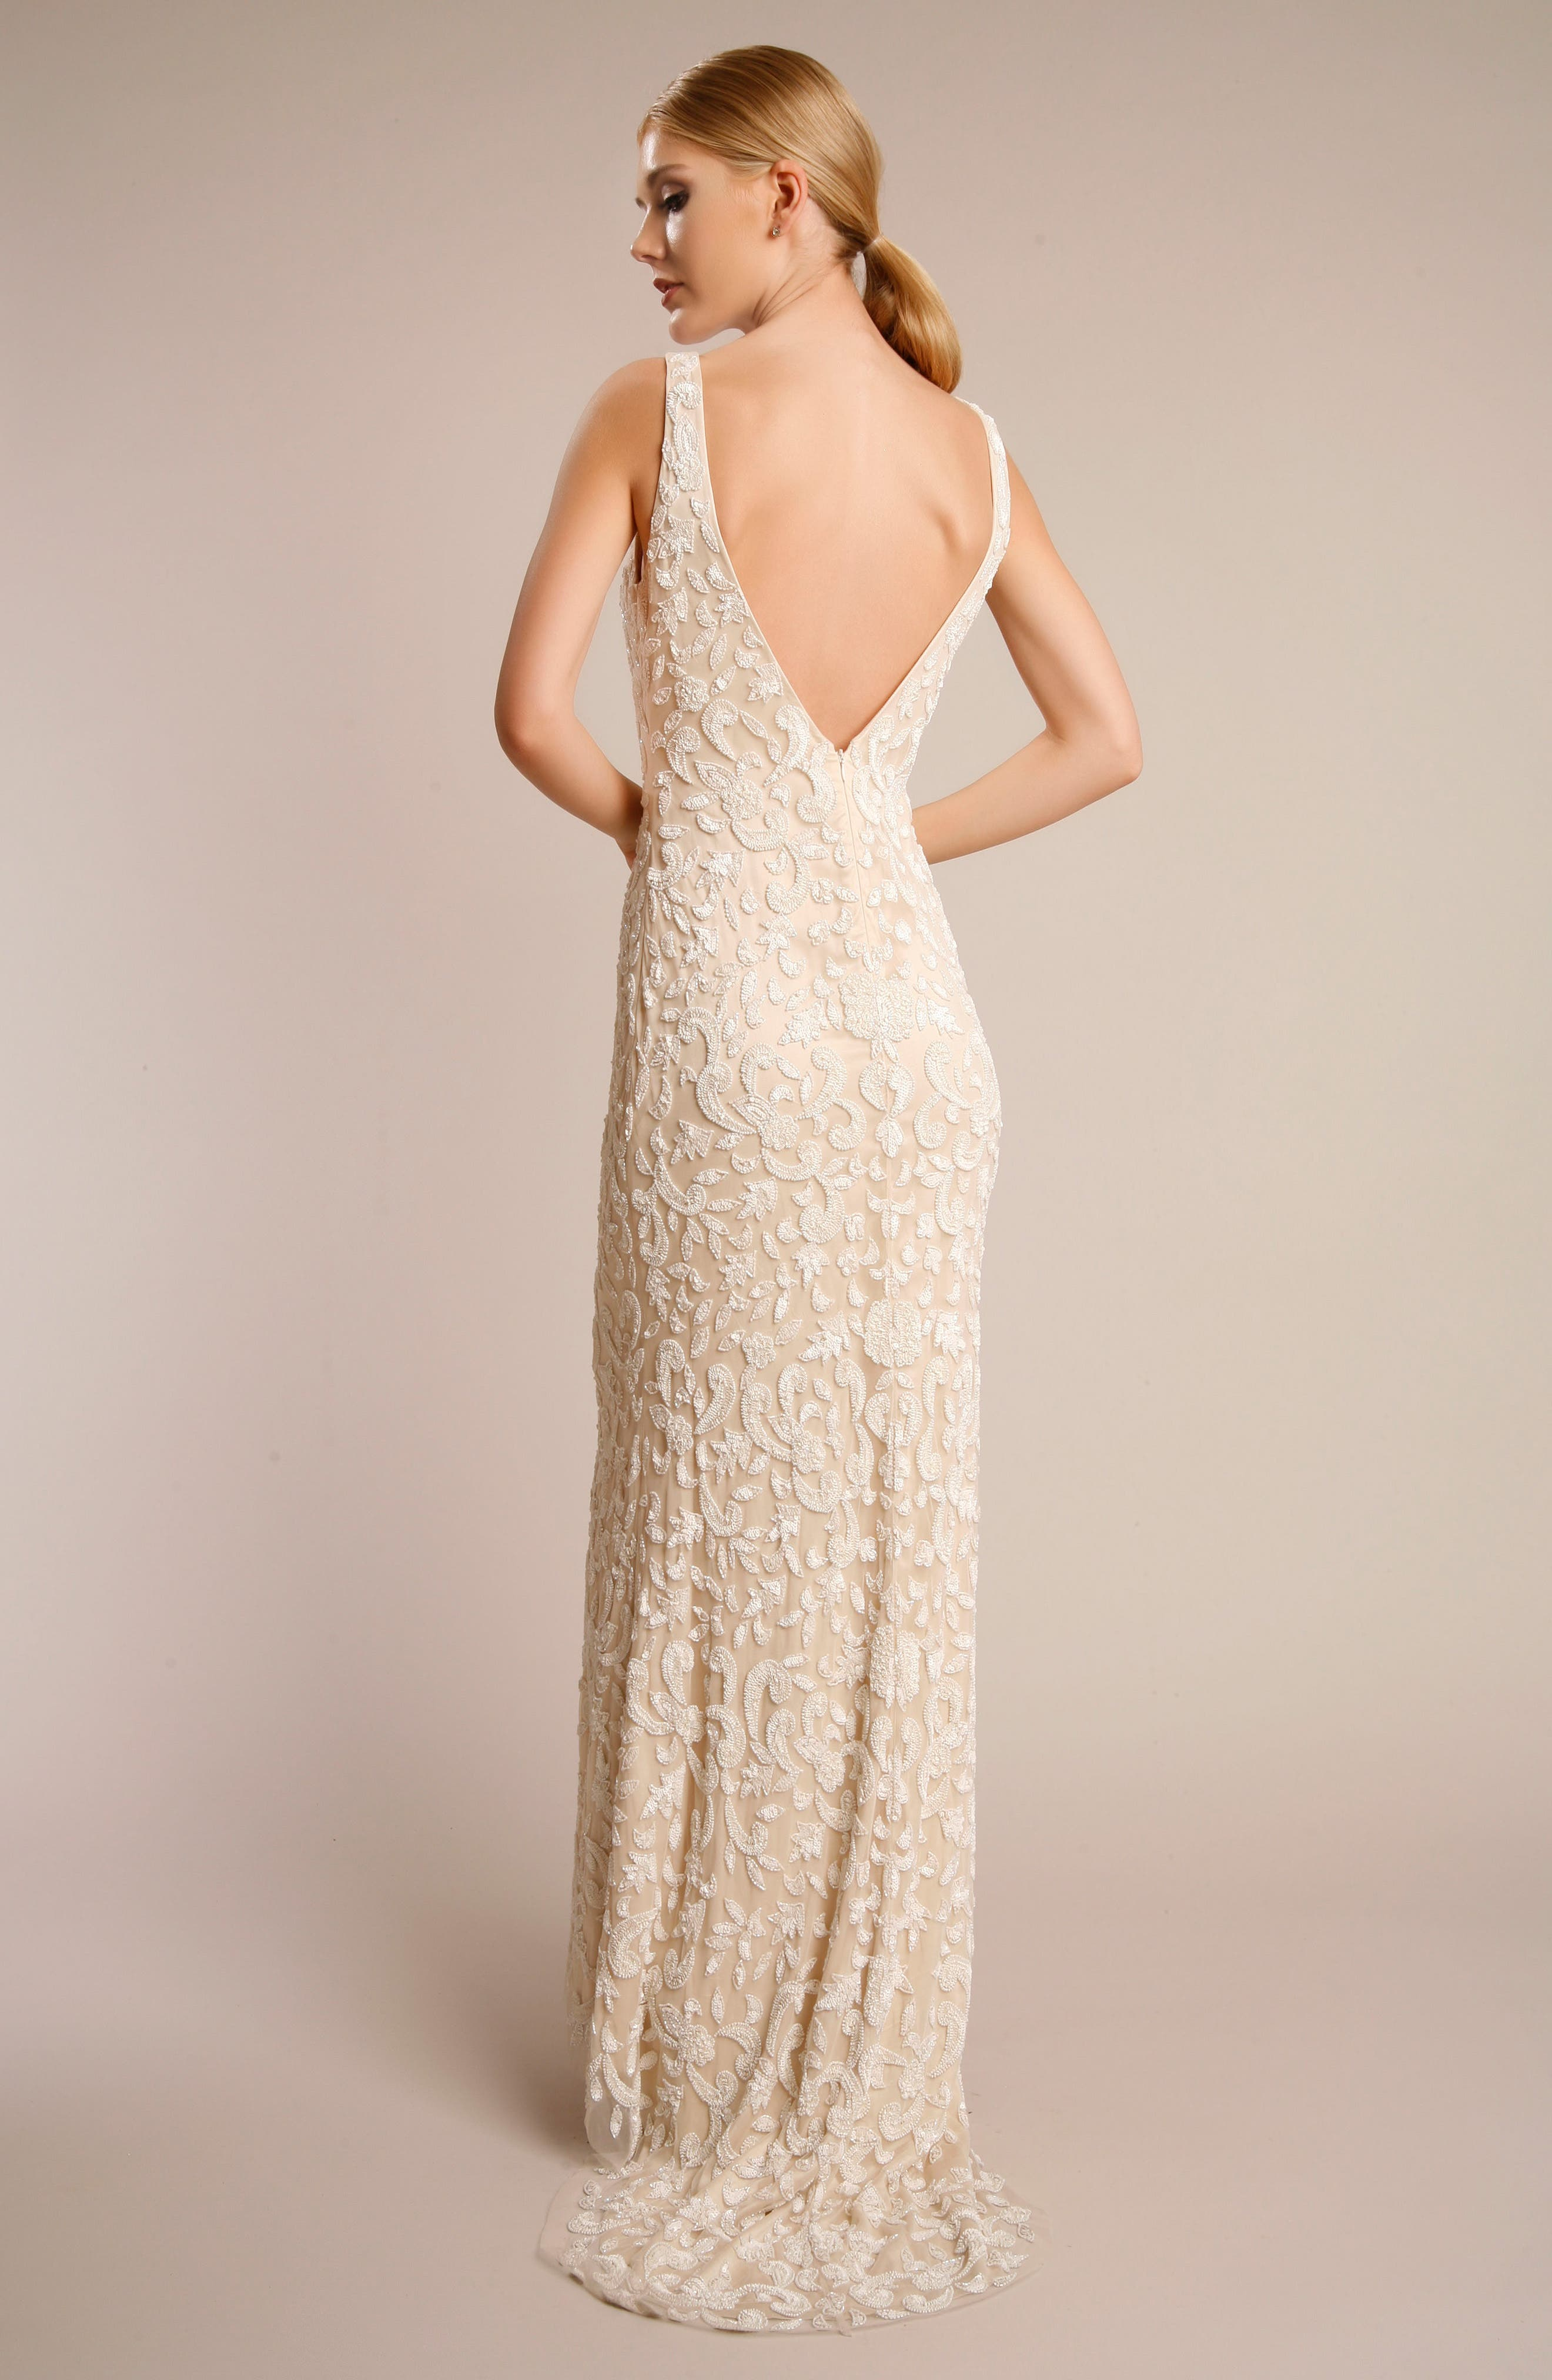 K'Mich Weddings - wedding planning - affordable wedding dresses - Lotus Threads Beaded Lace Gown - Nordstrom